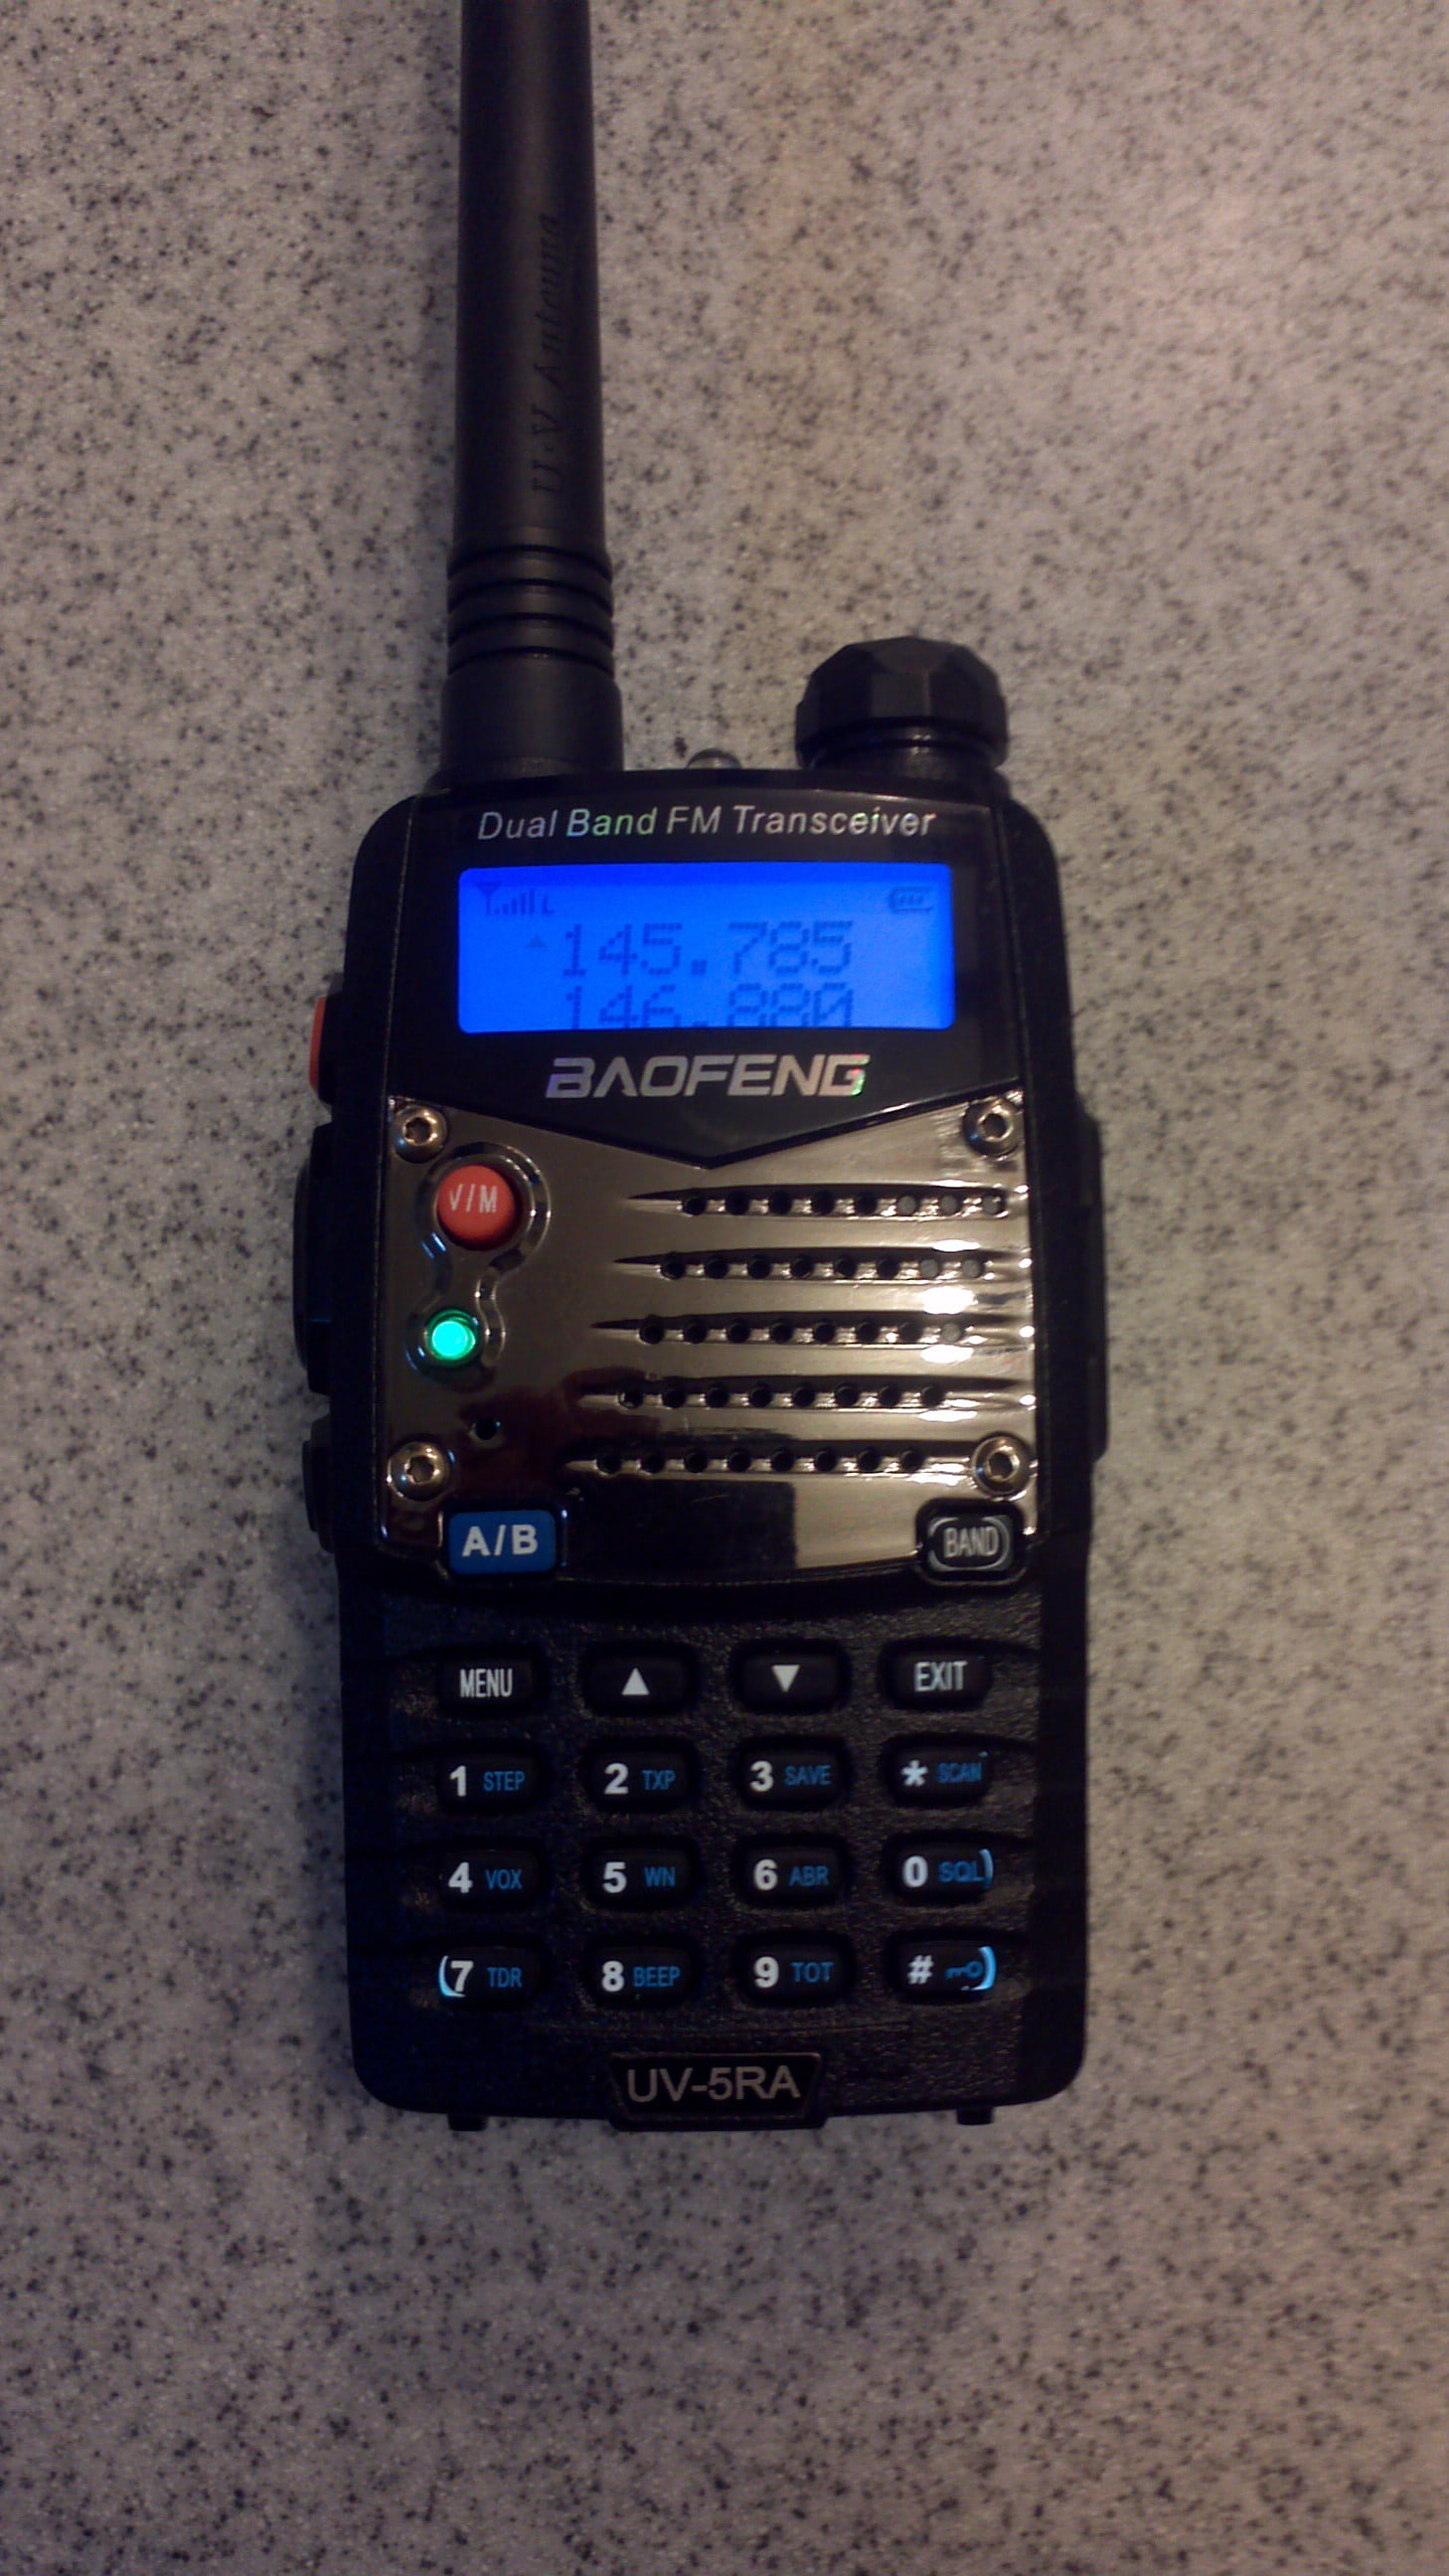 Sending Accurate Baofeng DTMF Tones from the UV-5R